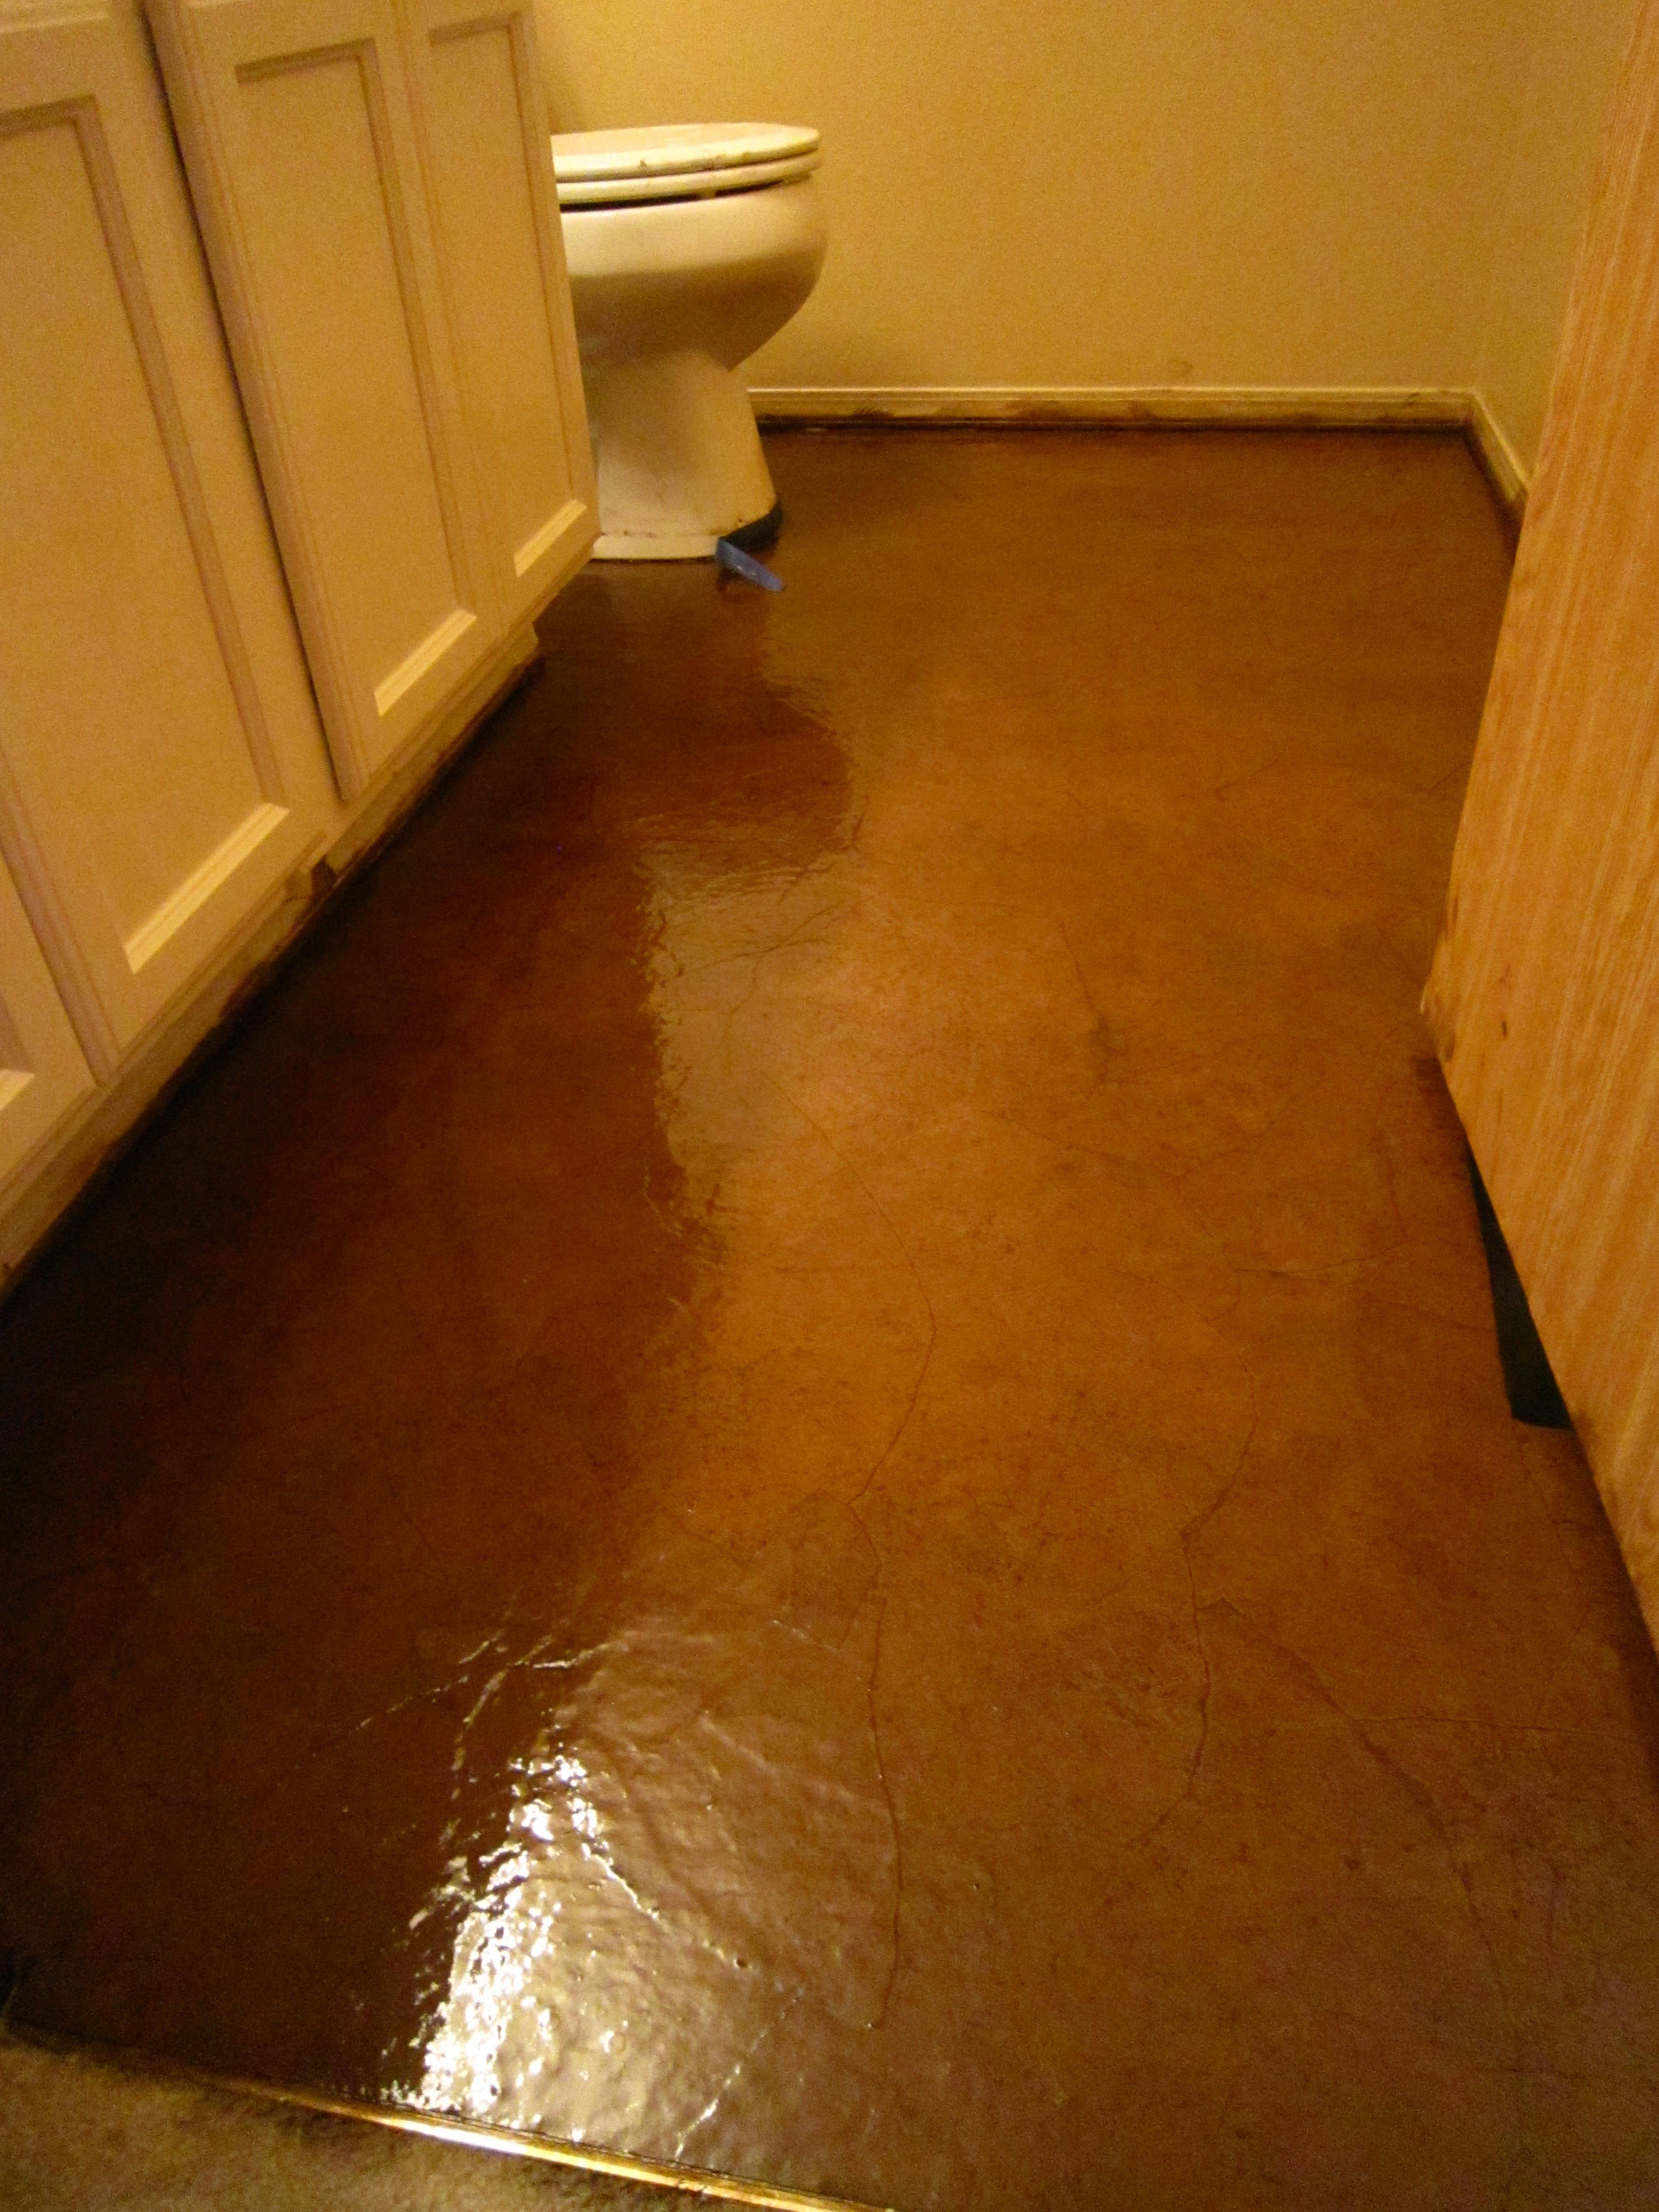 Diy stained brown paper floor awesomeness under 30 do it yourself diy stained brown paper floor awesomeness under 30 do it yourself hardwoodlaminate floor alternative solutioingenieria